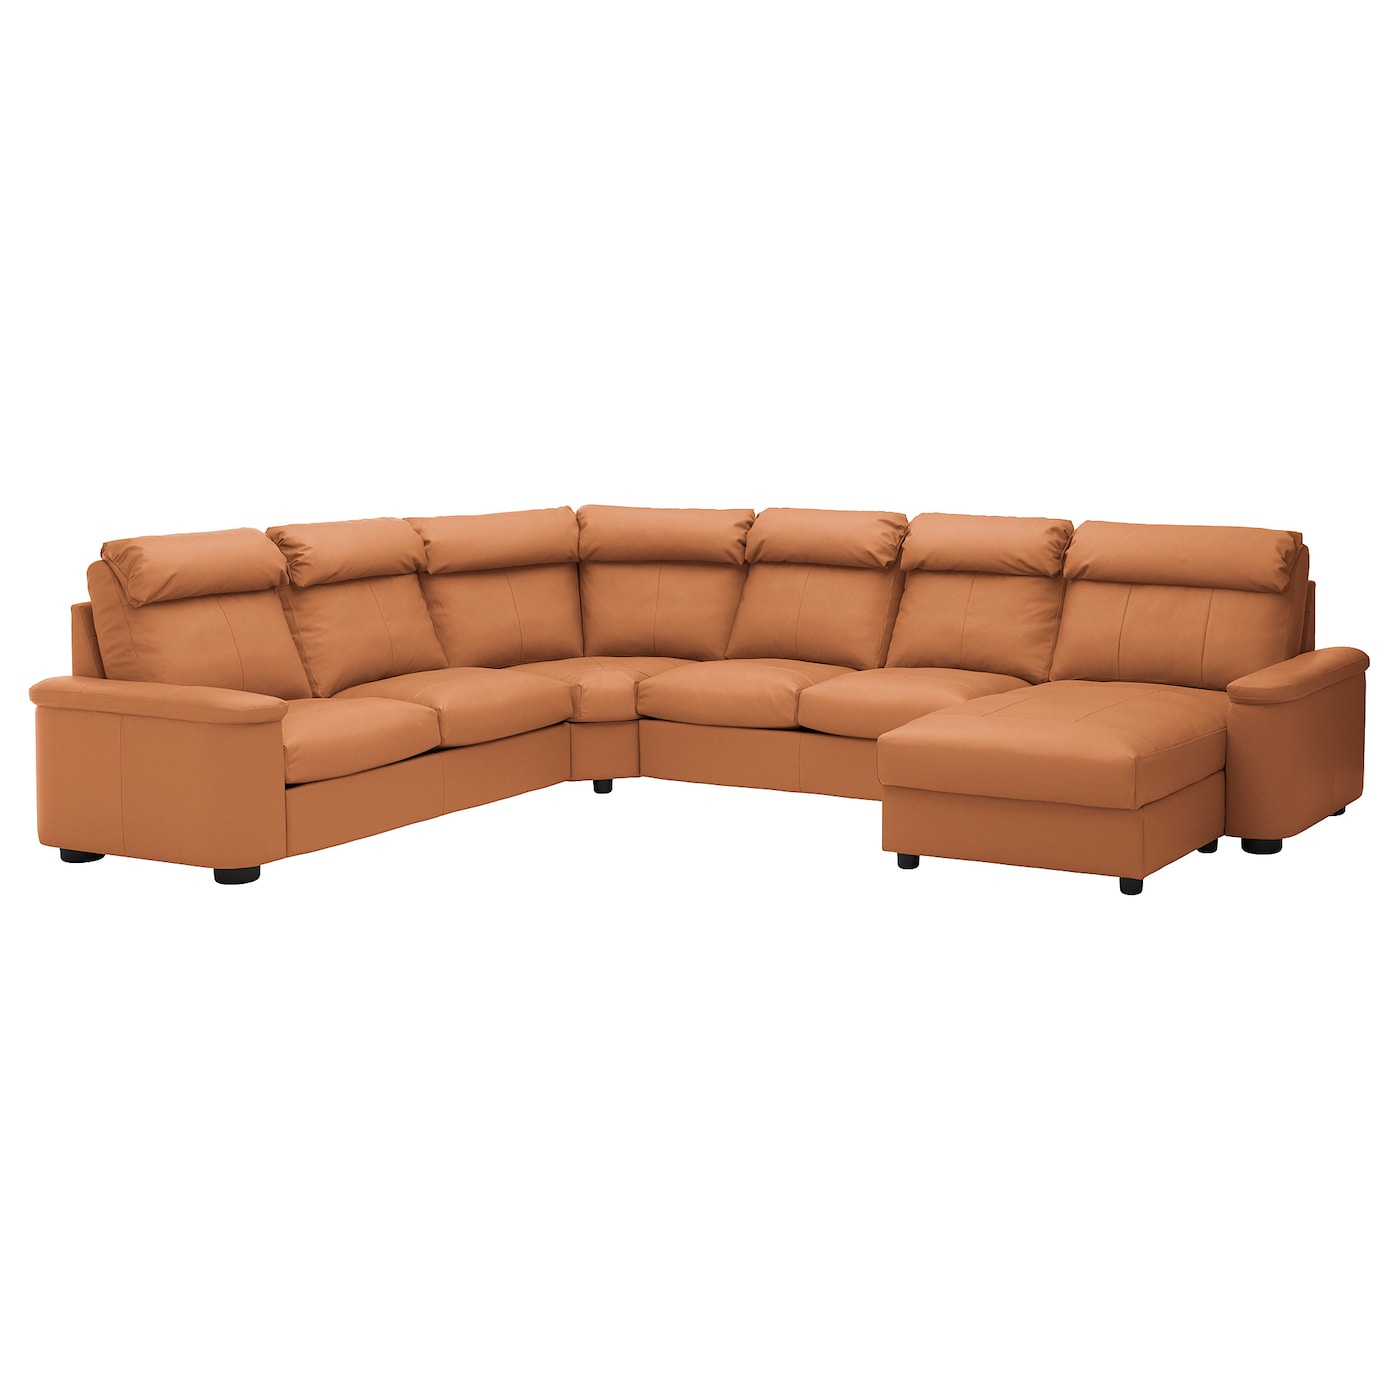 IKEA LIDHULT Corner Sofa, 6 Seat 10 Year Guarantee. Read About The Terms